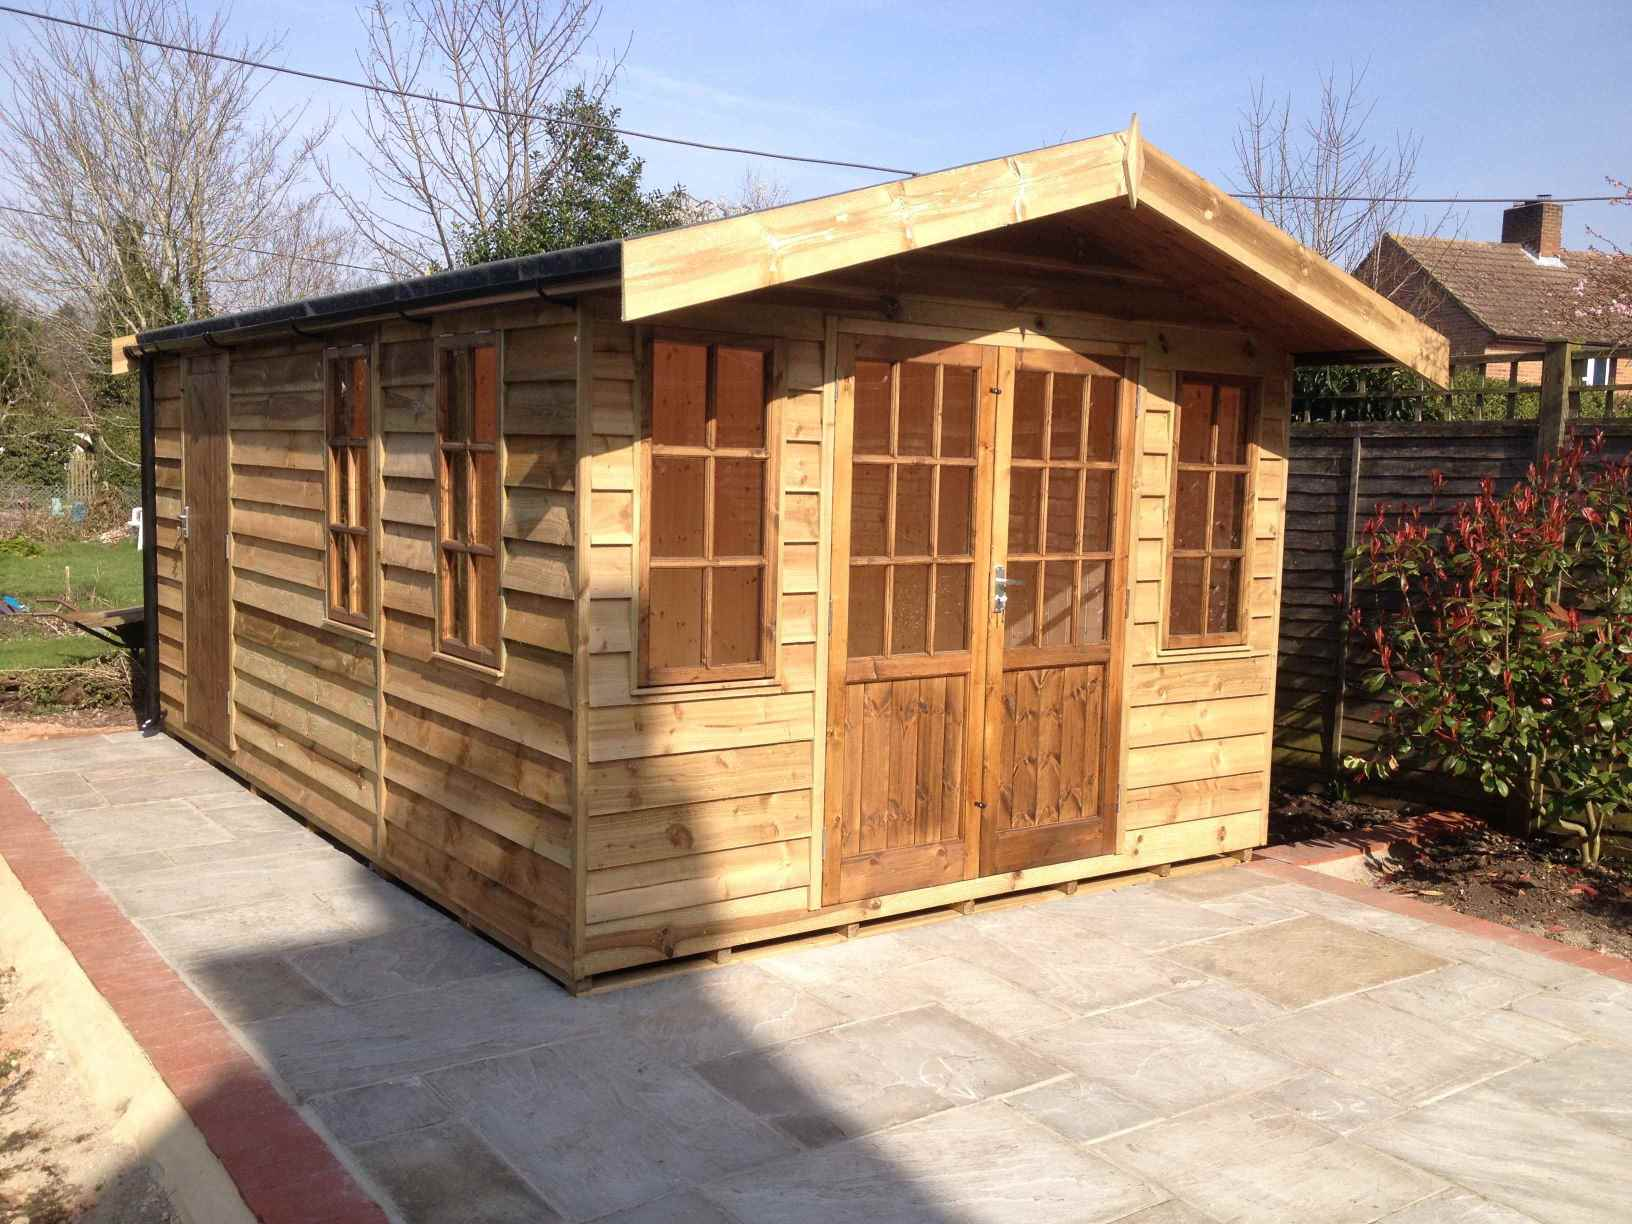 1224 #AD751E  Cladding Hampton Doors And Windows And Seperate Shed Compartment image Shed Doors And Windows 41331632